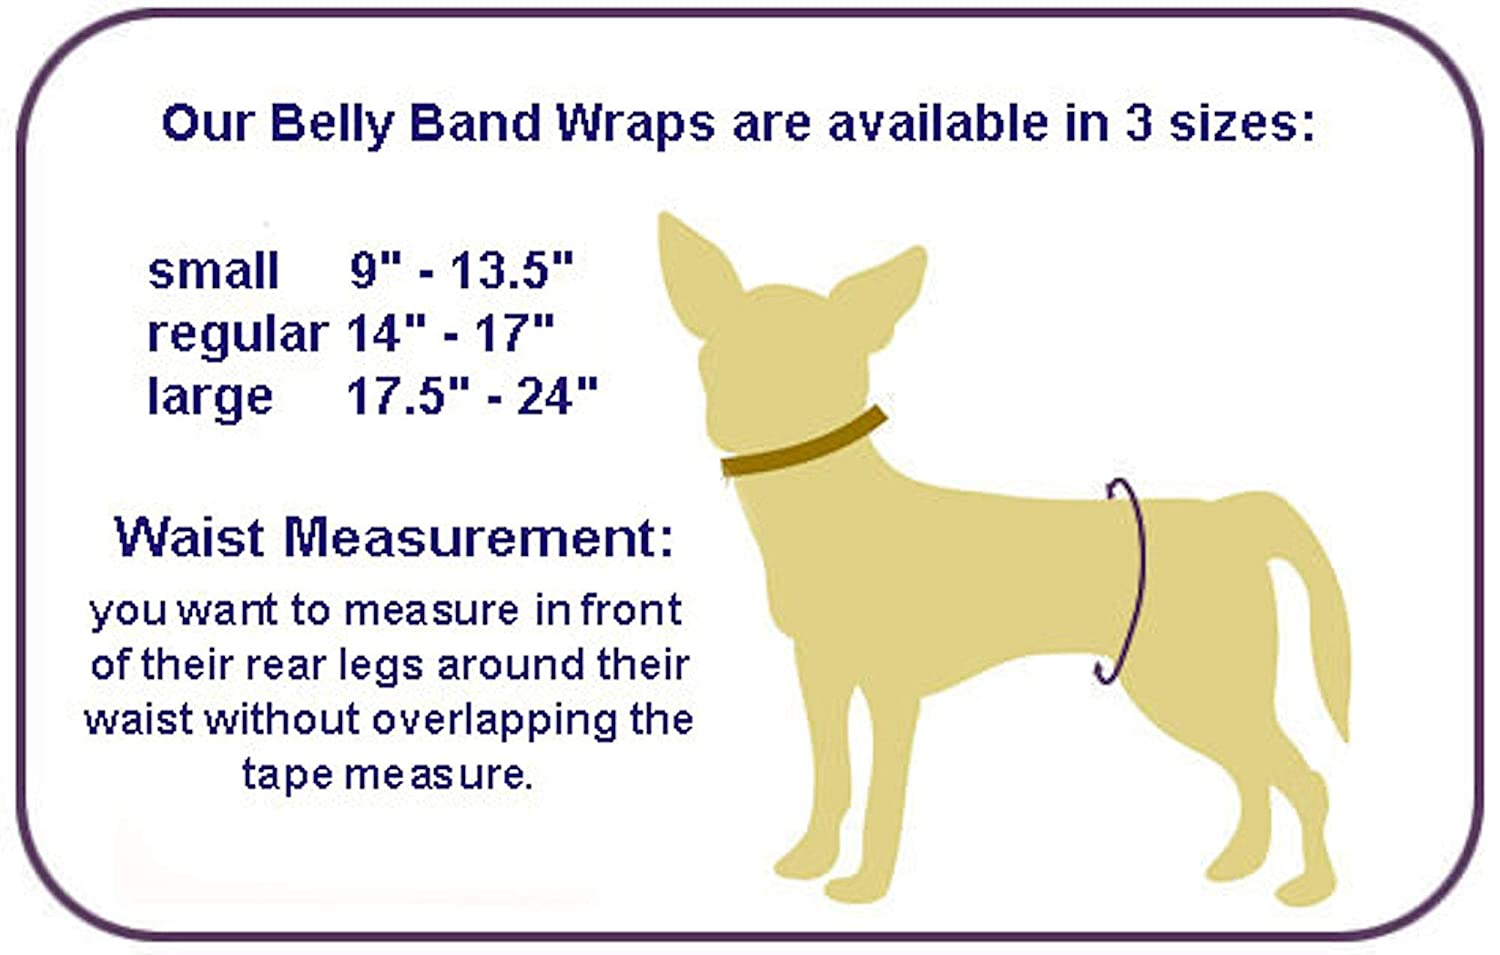 Rescue Dogs Potty Training Male Dog Belly Band Belly Band Wraps Paracord Buckle Closure Senior Dogs